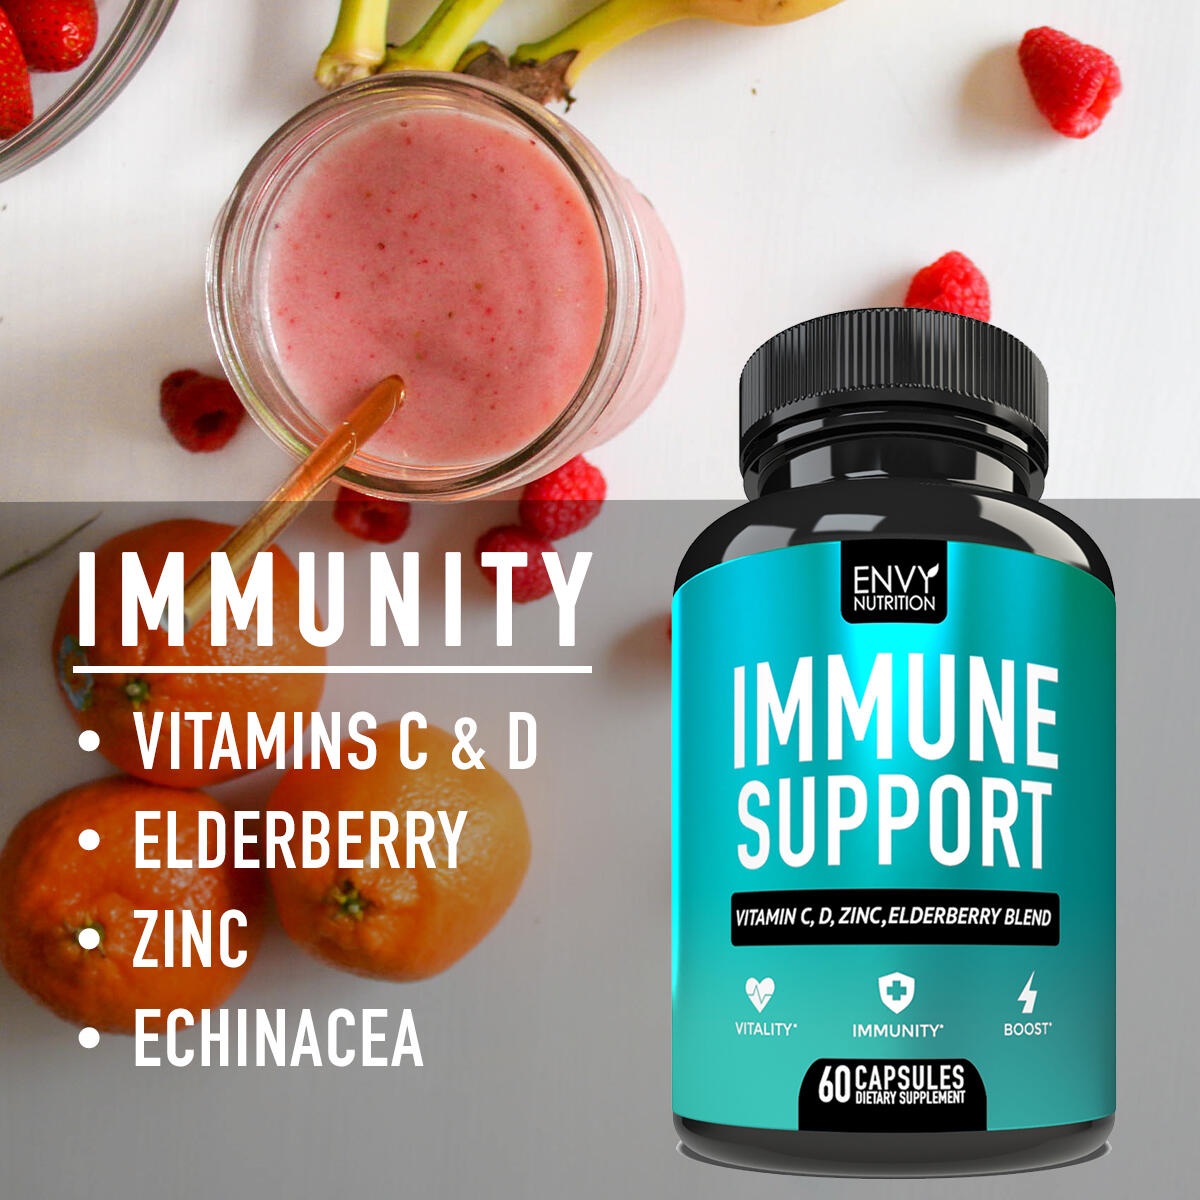 Immune Support - Immunity Boost Supplement with Elderberry, Vitamin C, Echinacea and Zinc - Once Daily Immune System Booster for Adults - 60 Capsules